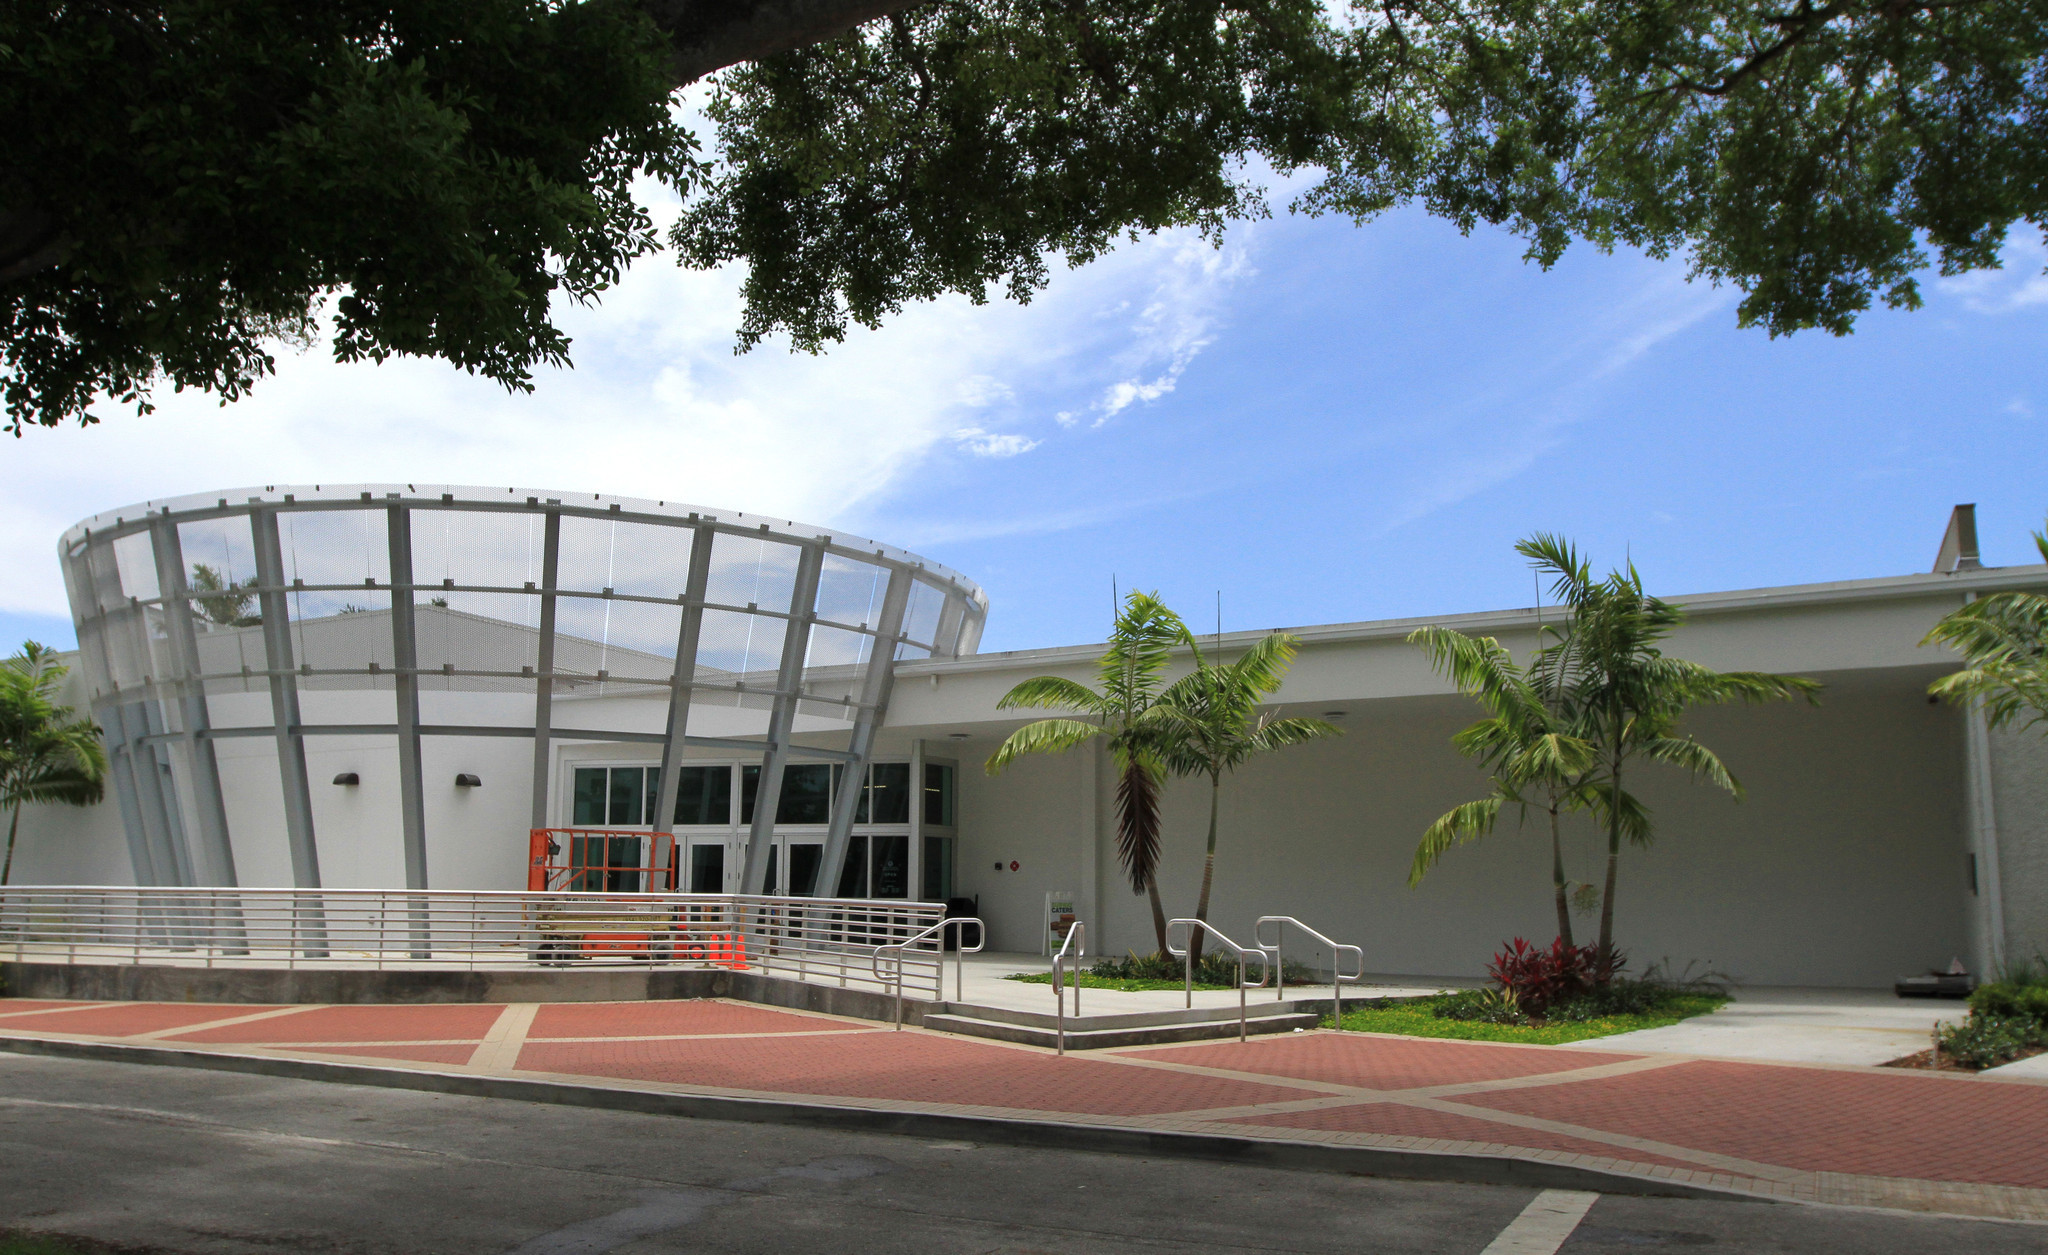 South Florida Science Museum West Palm Beach